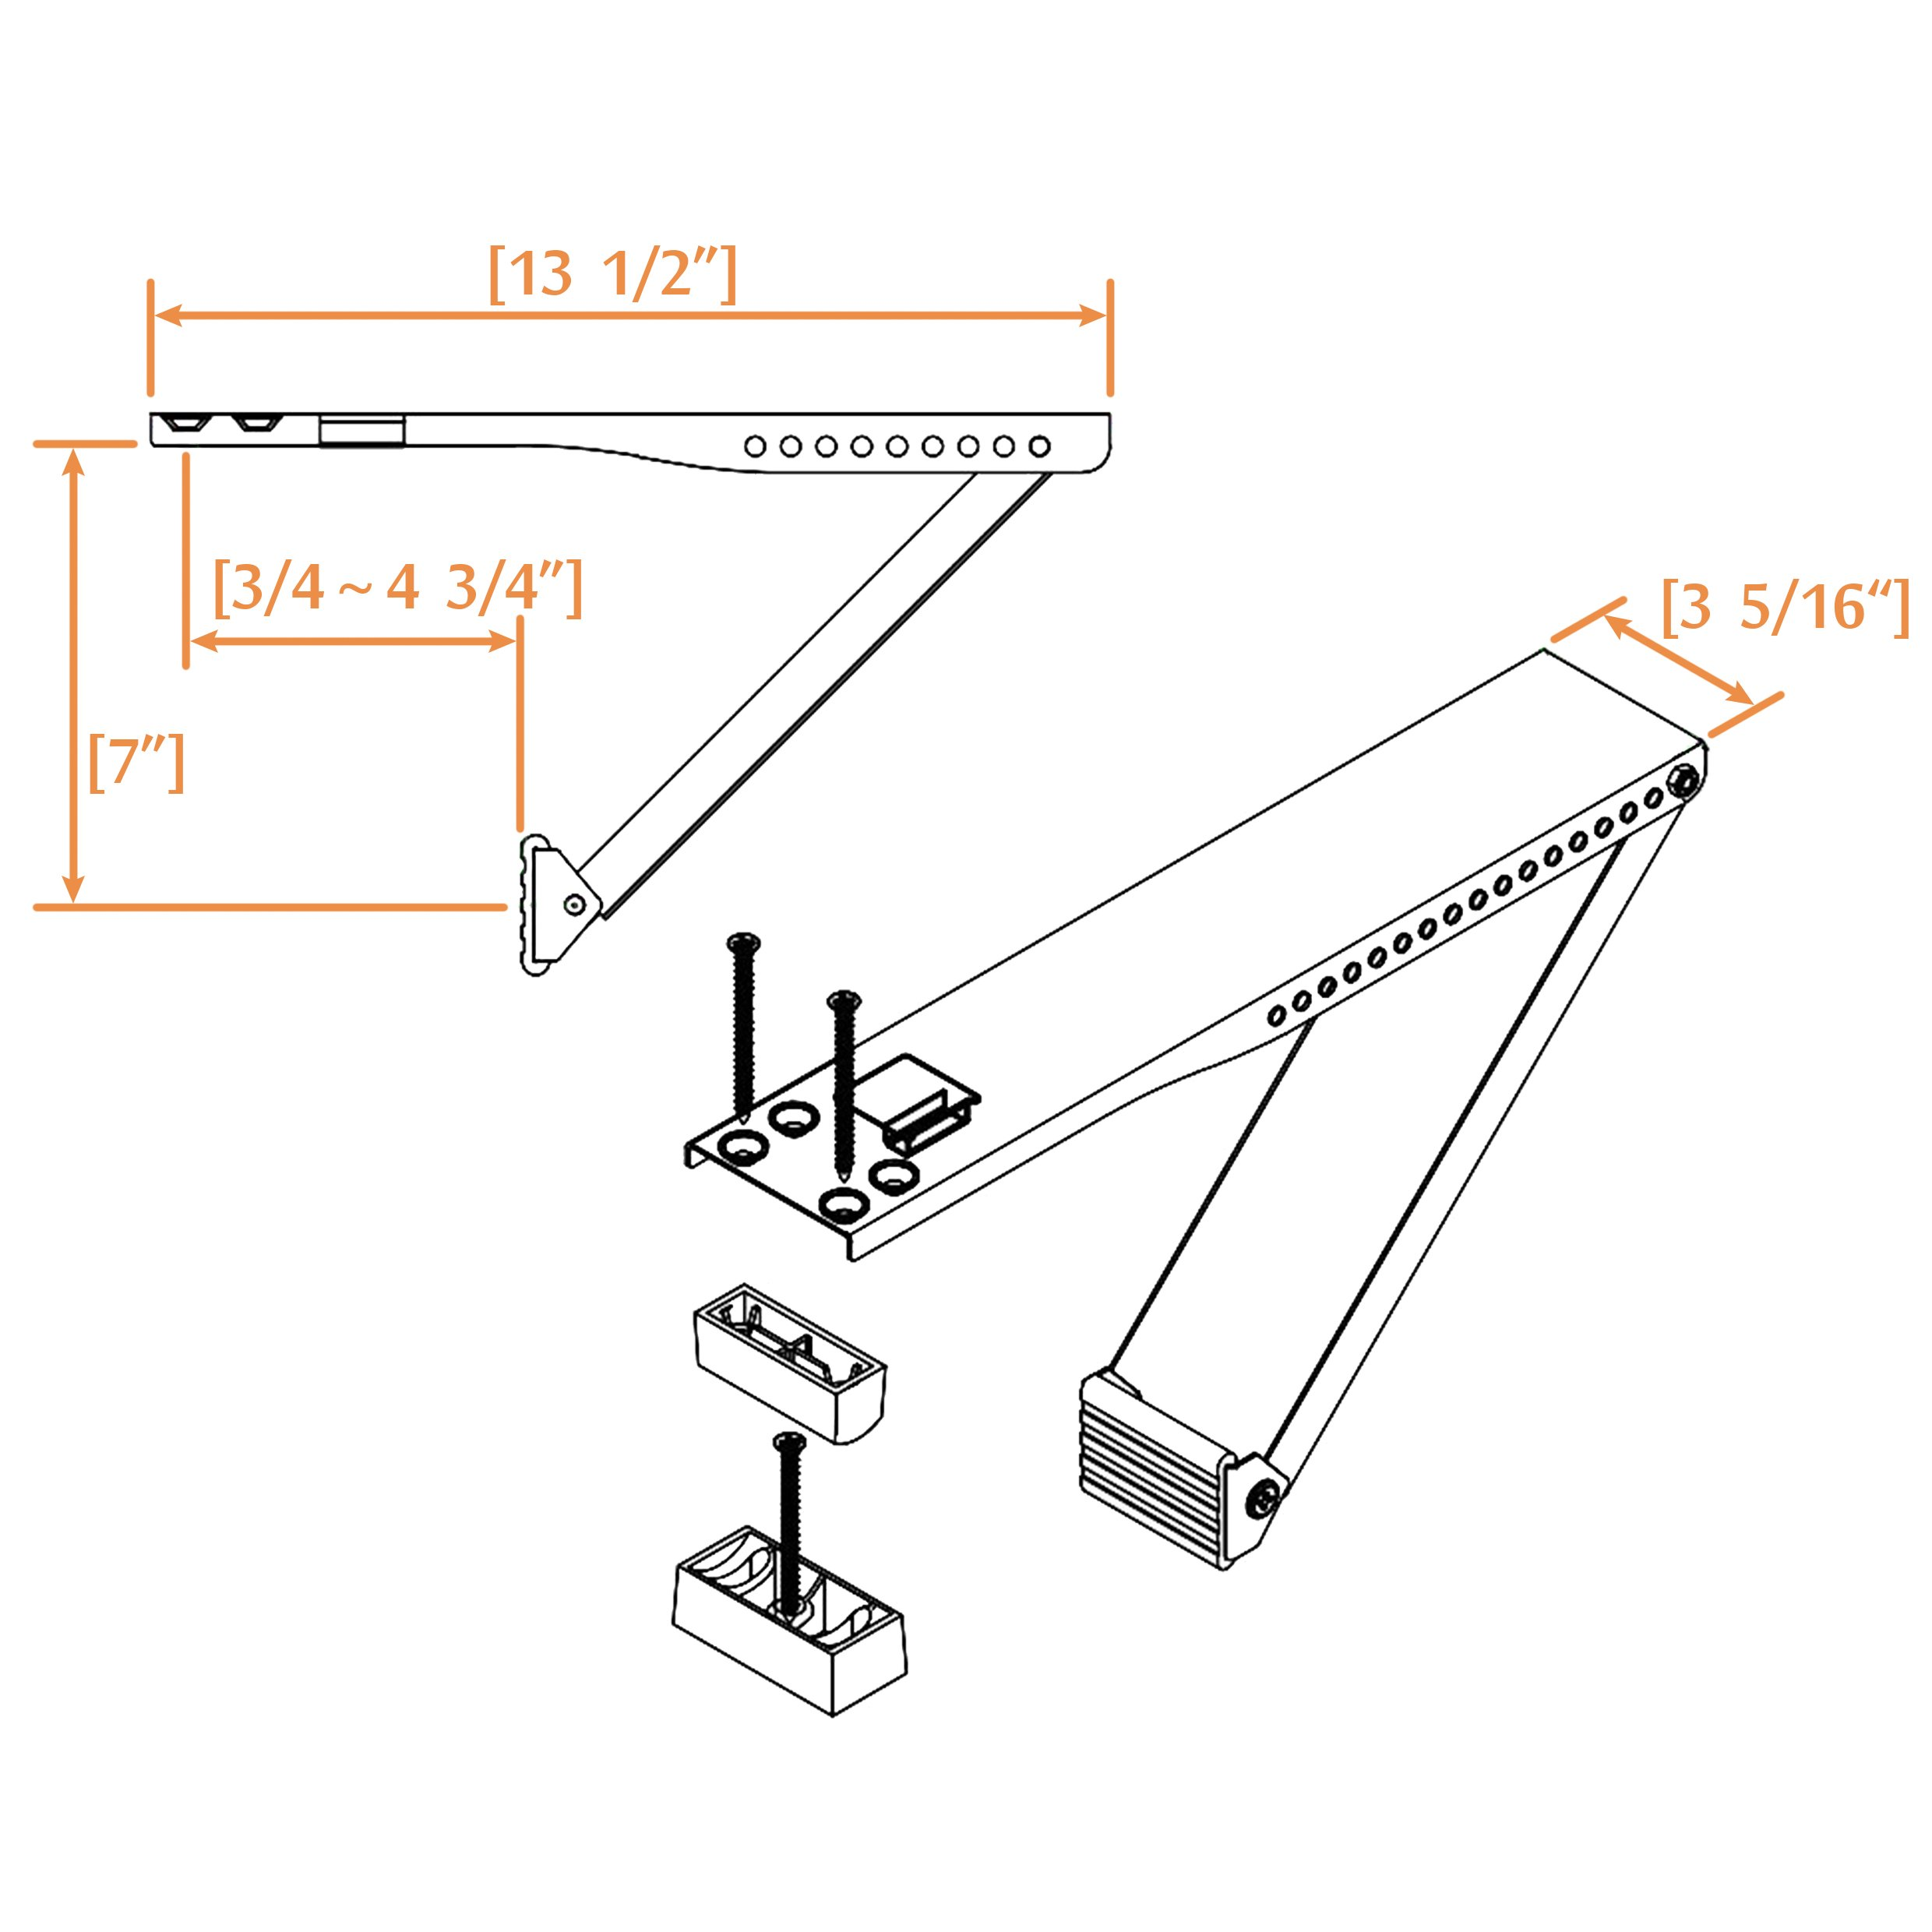 Jeacent Universal AC Window Air Conditioner Support Bracket Light Duty, Up to 85 lbs by Jeacent (Image #2)